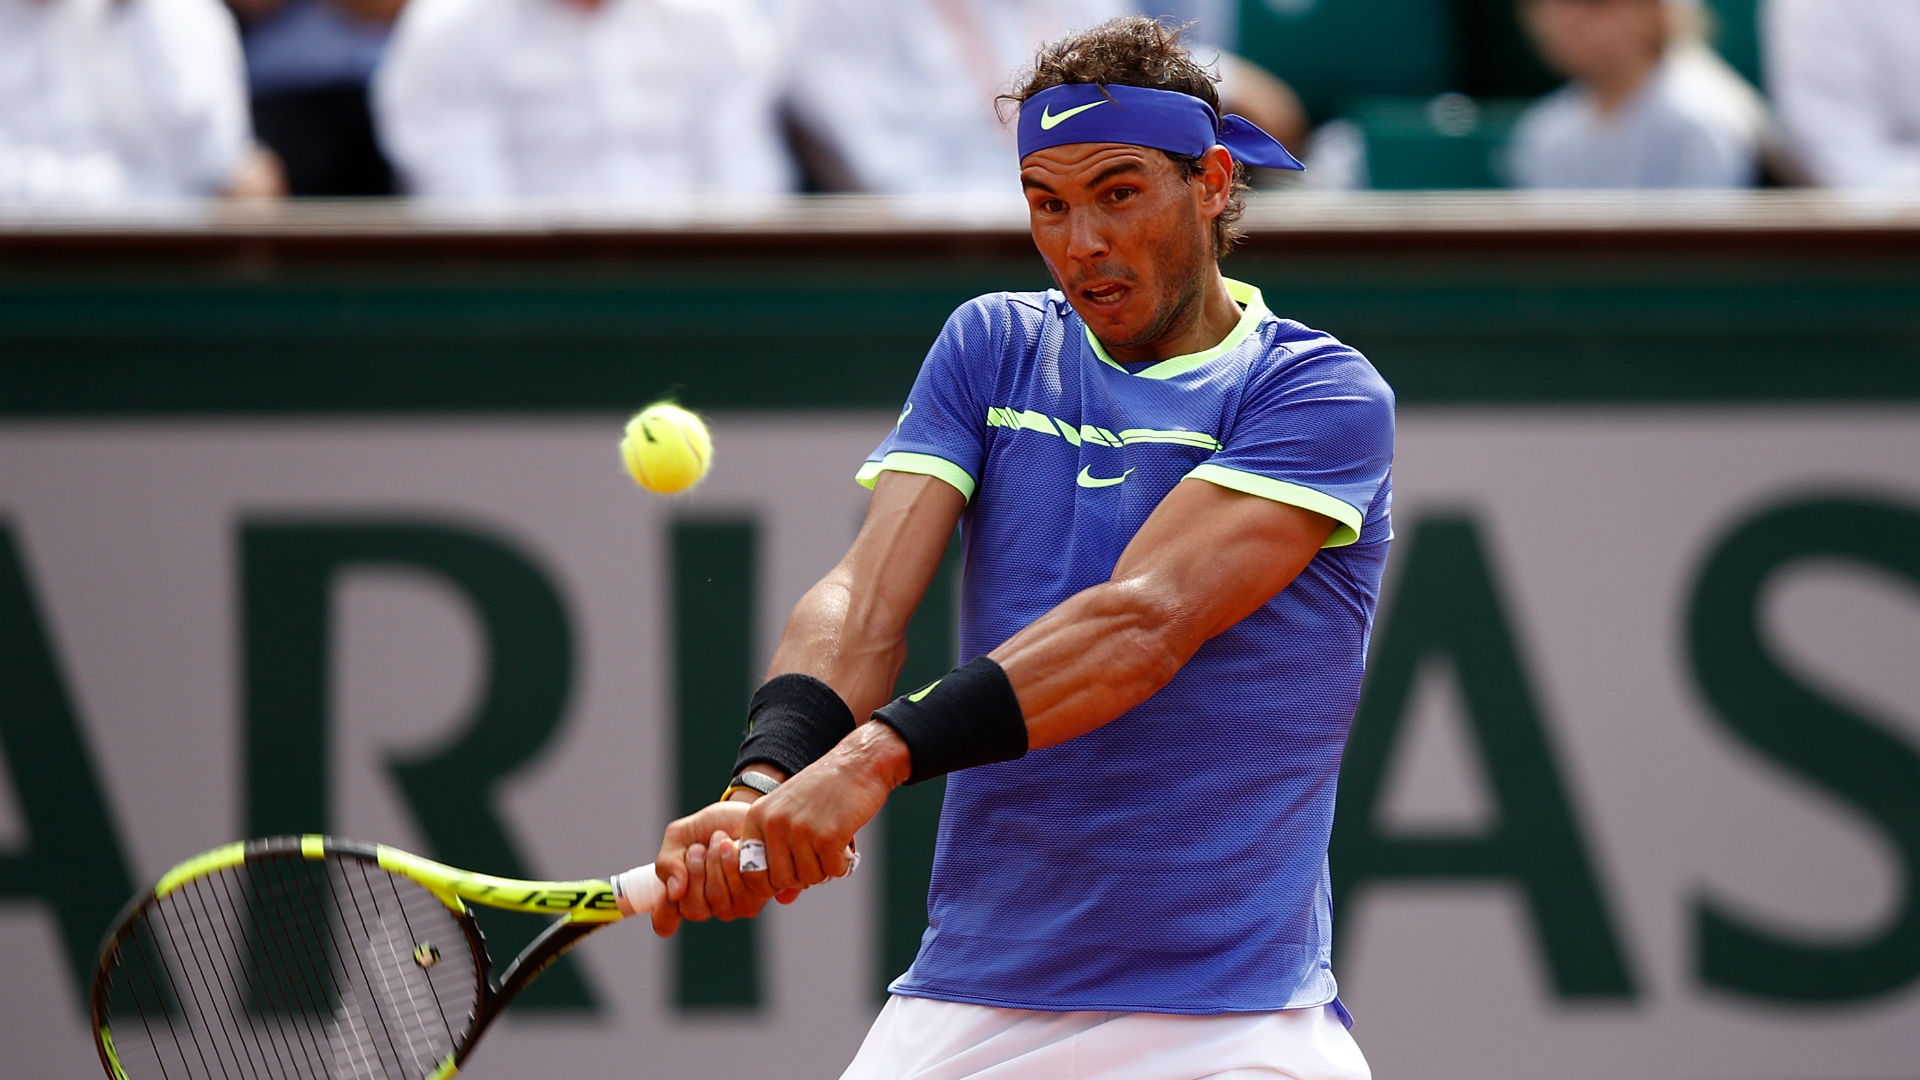 Nadal overwhelms Basilashvili in third round